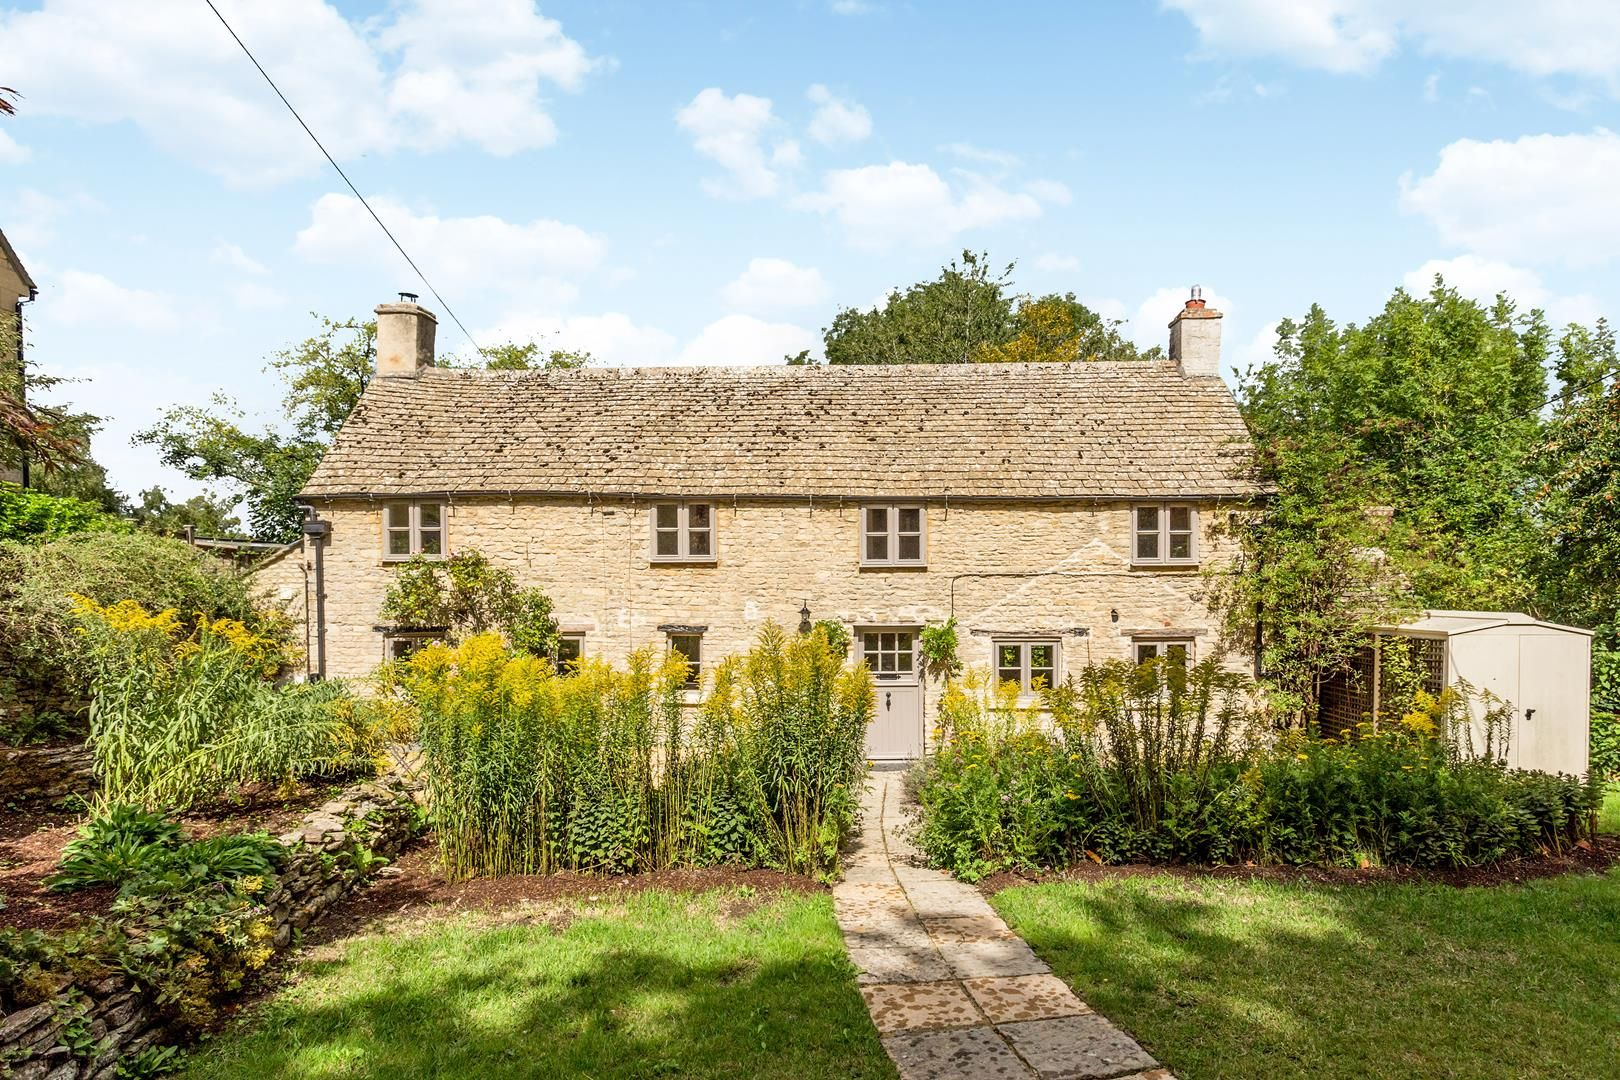 People book with StayCotswold because, well, we know the Cotswolds